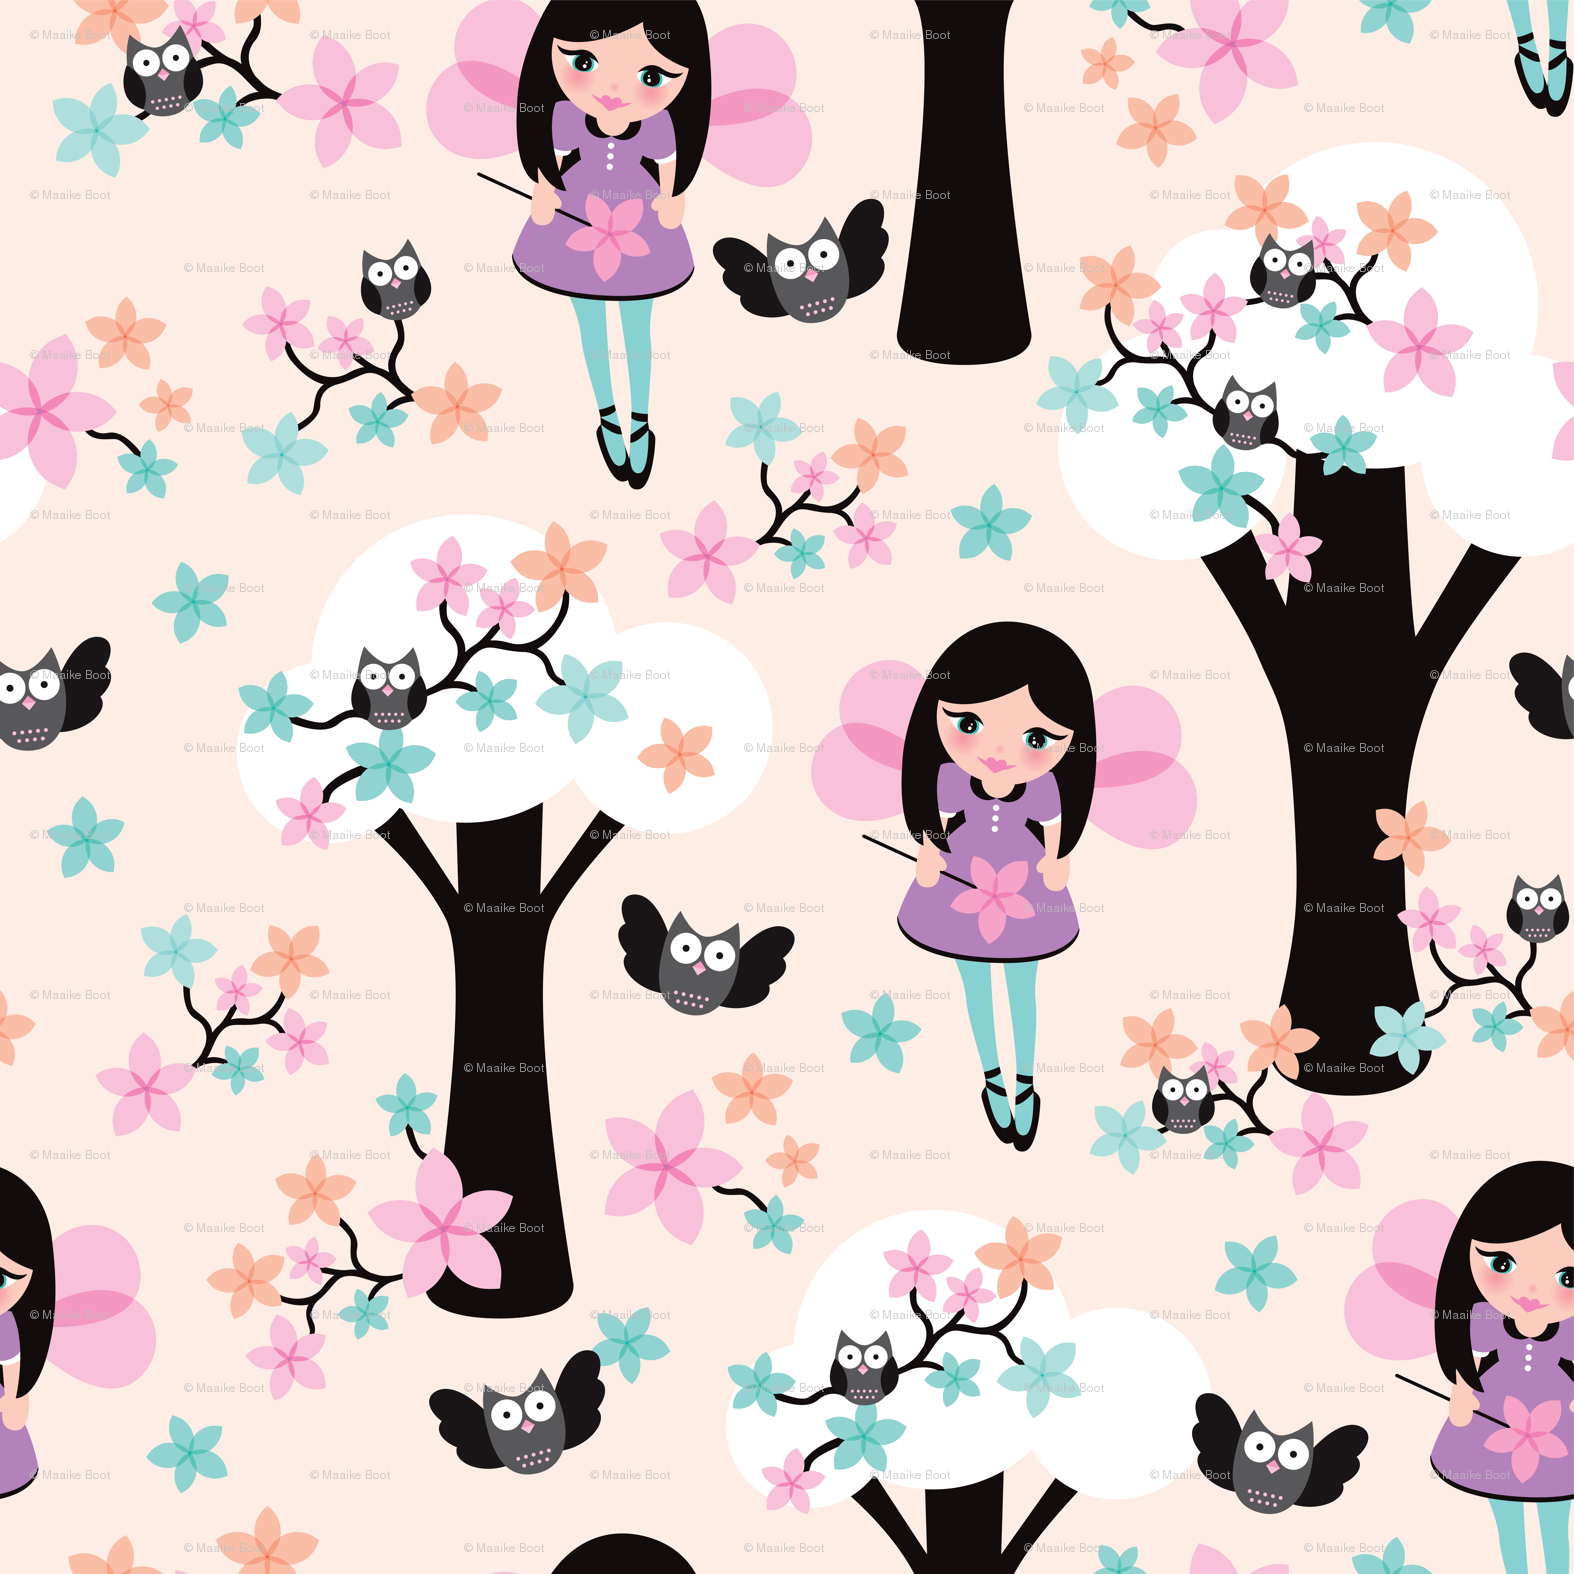 Cute Fairy Princess Girls Illustration Pink Owl Tree Pattern Wallpaper